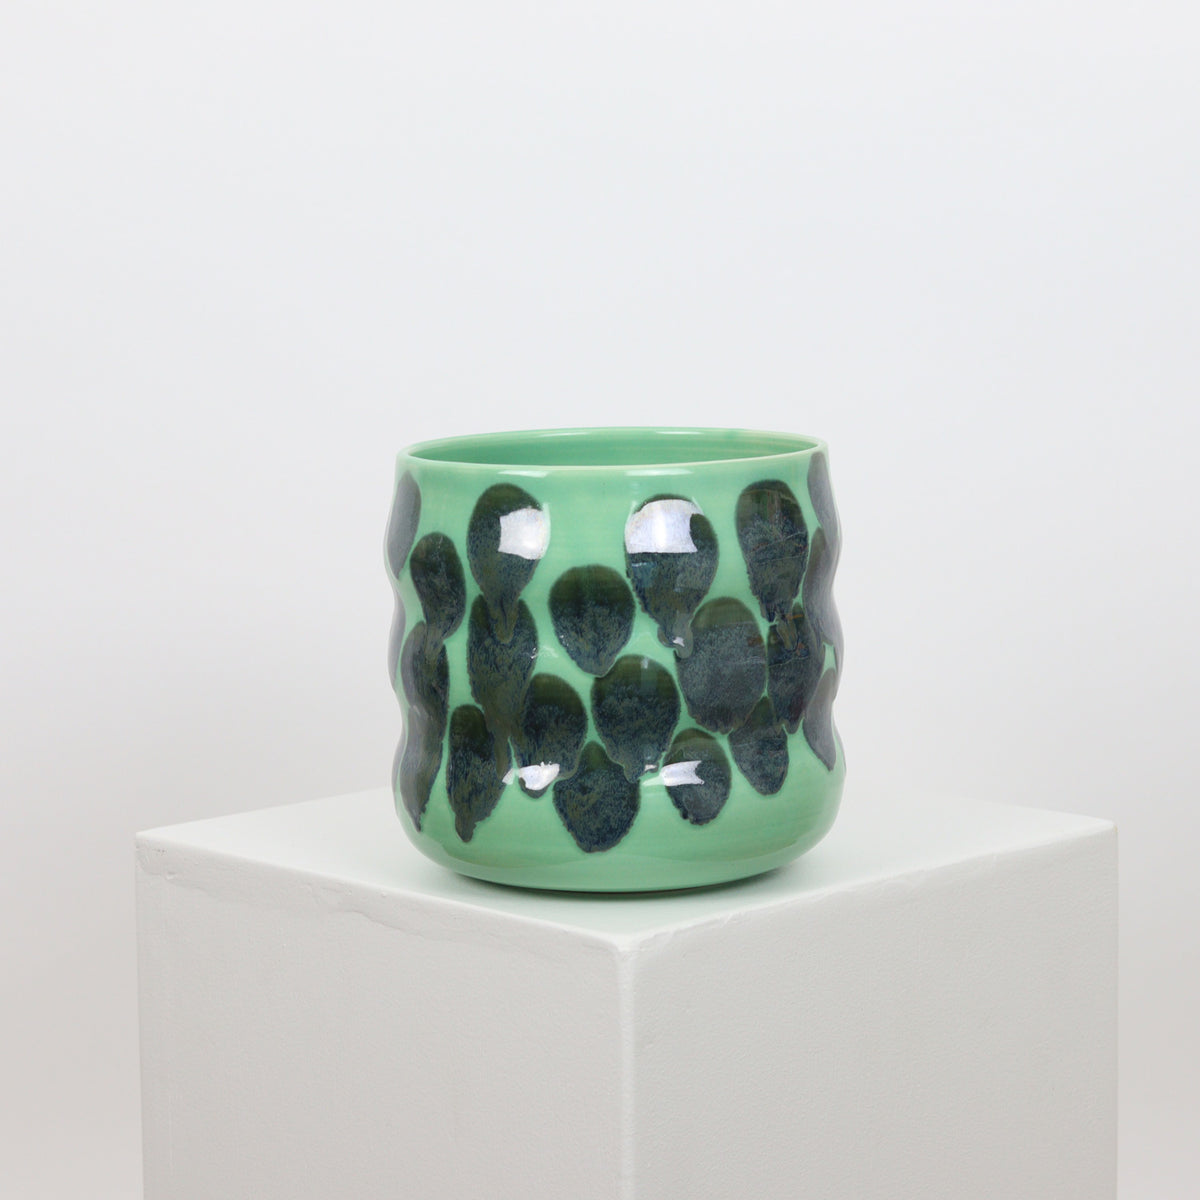 21099 - Mint with Drip Accents - Squiggle Planter